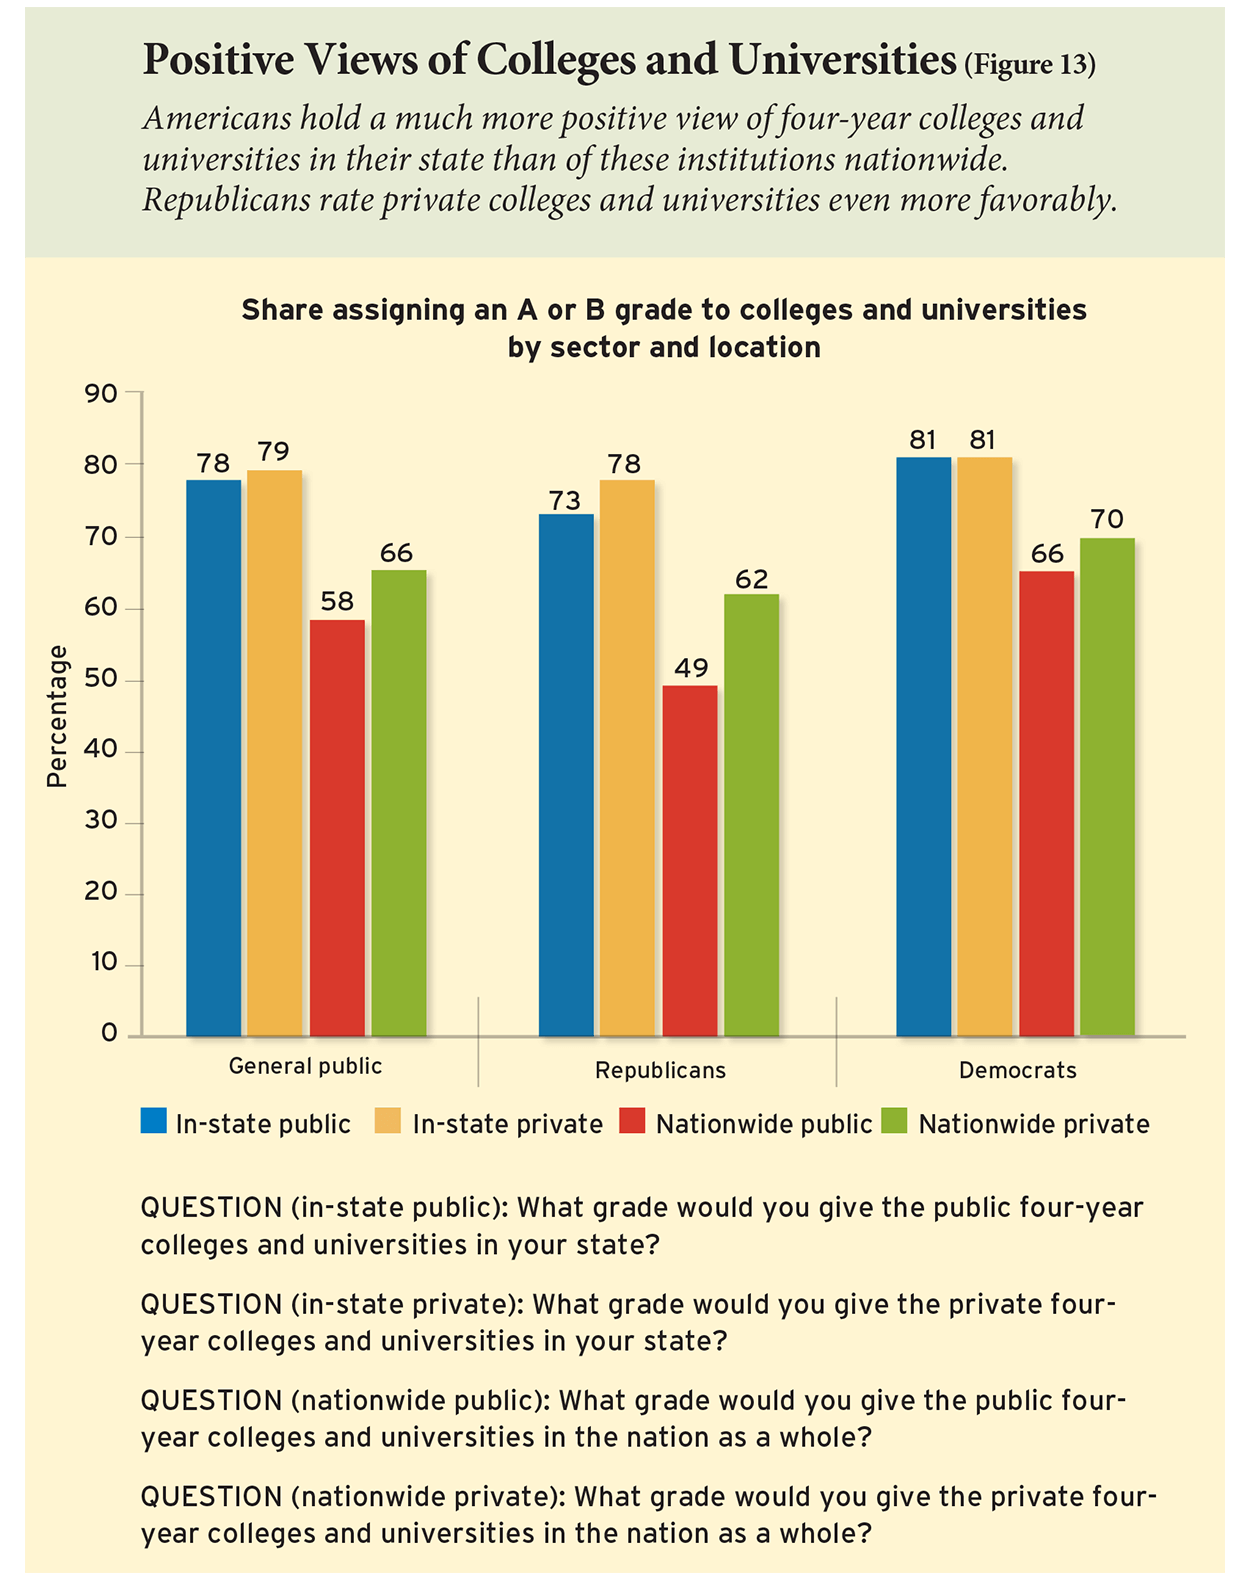 Positive Views of Colleges and Universities (Figure 13)